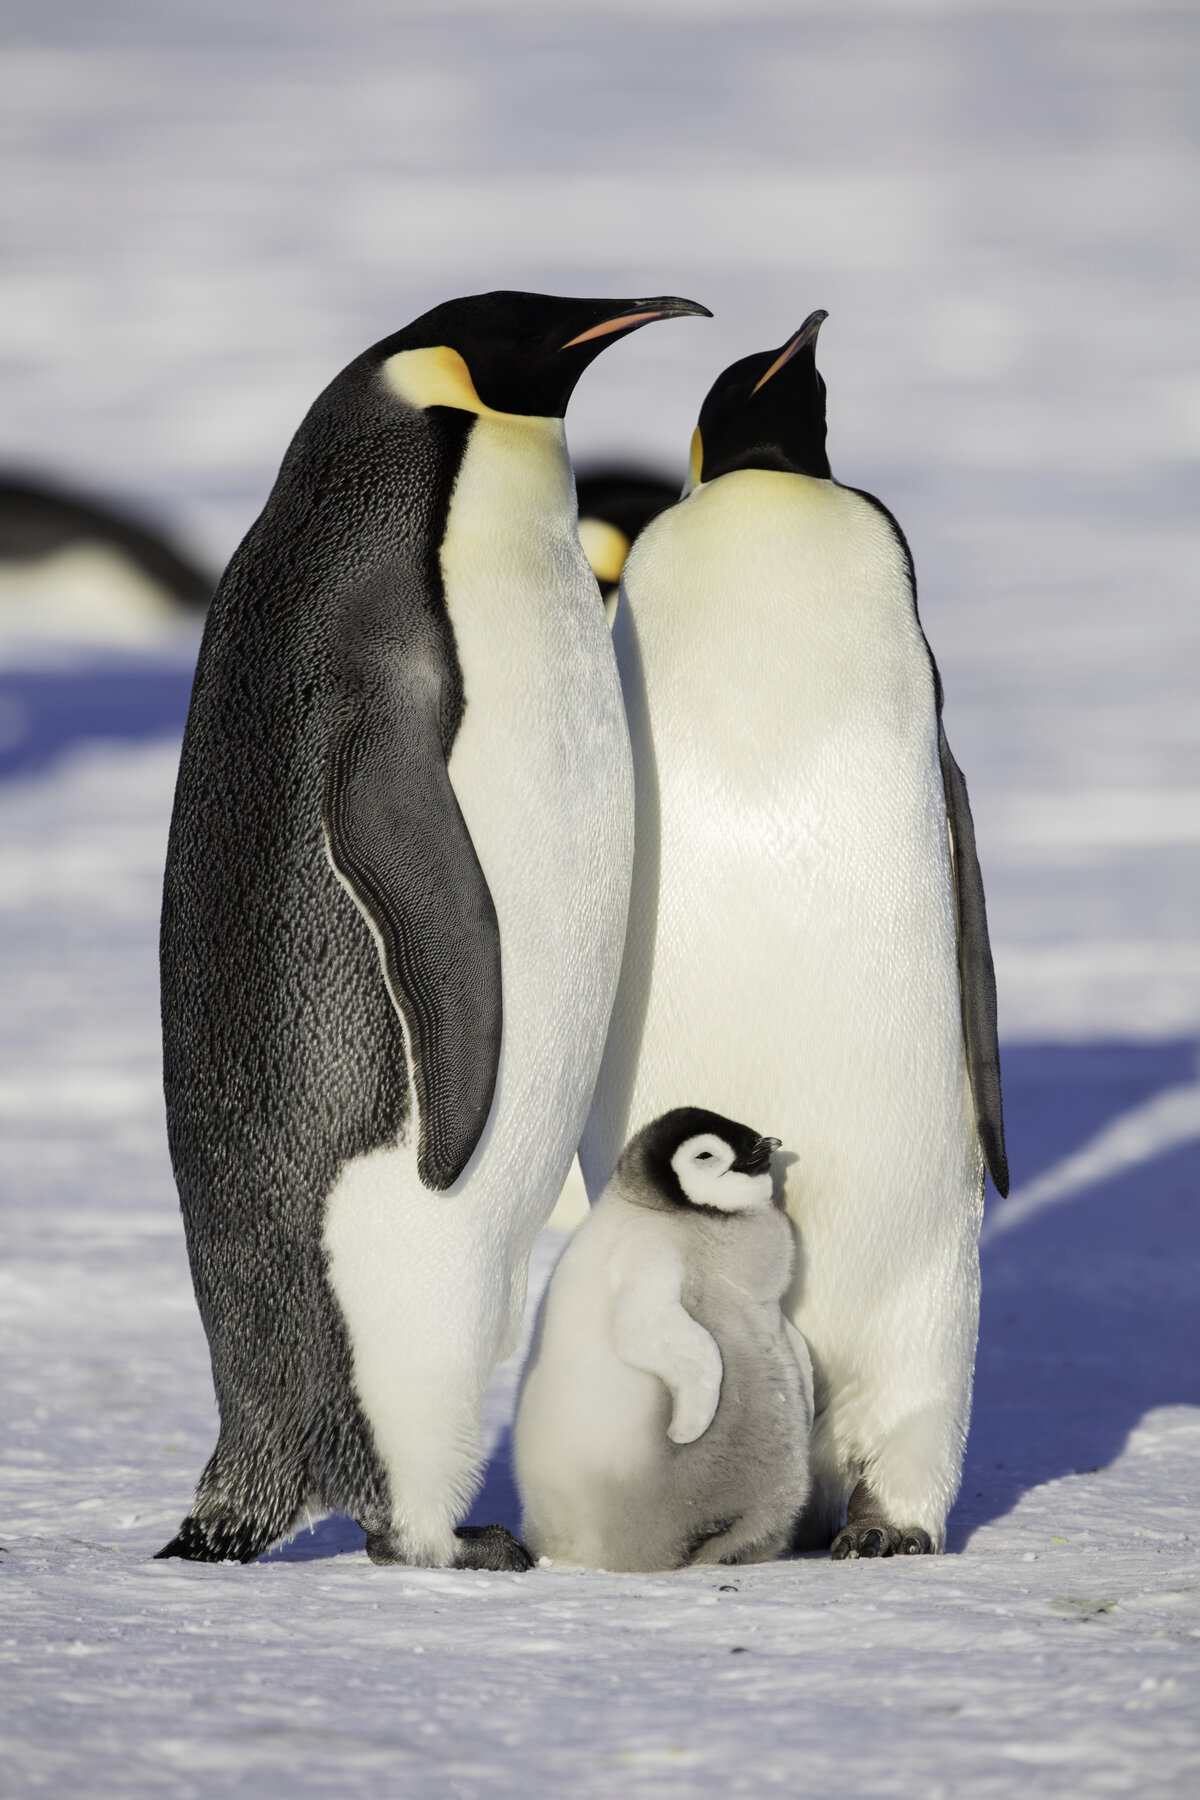 Chick stands between the feet of two adult emperor penguins